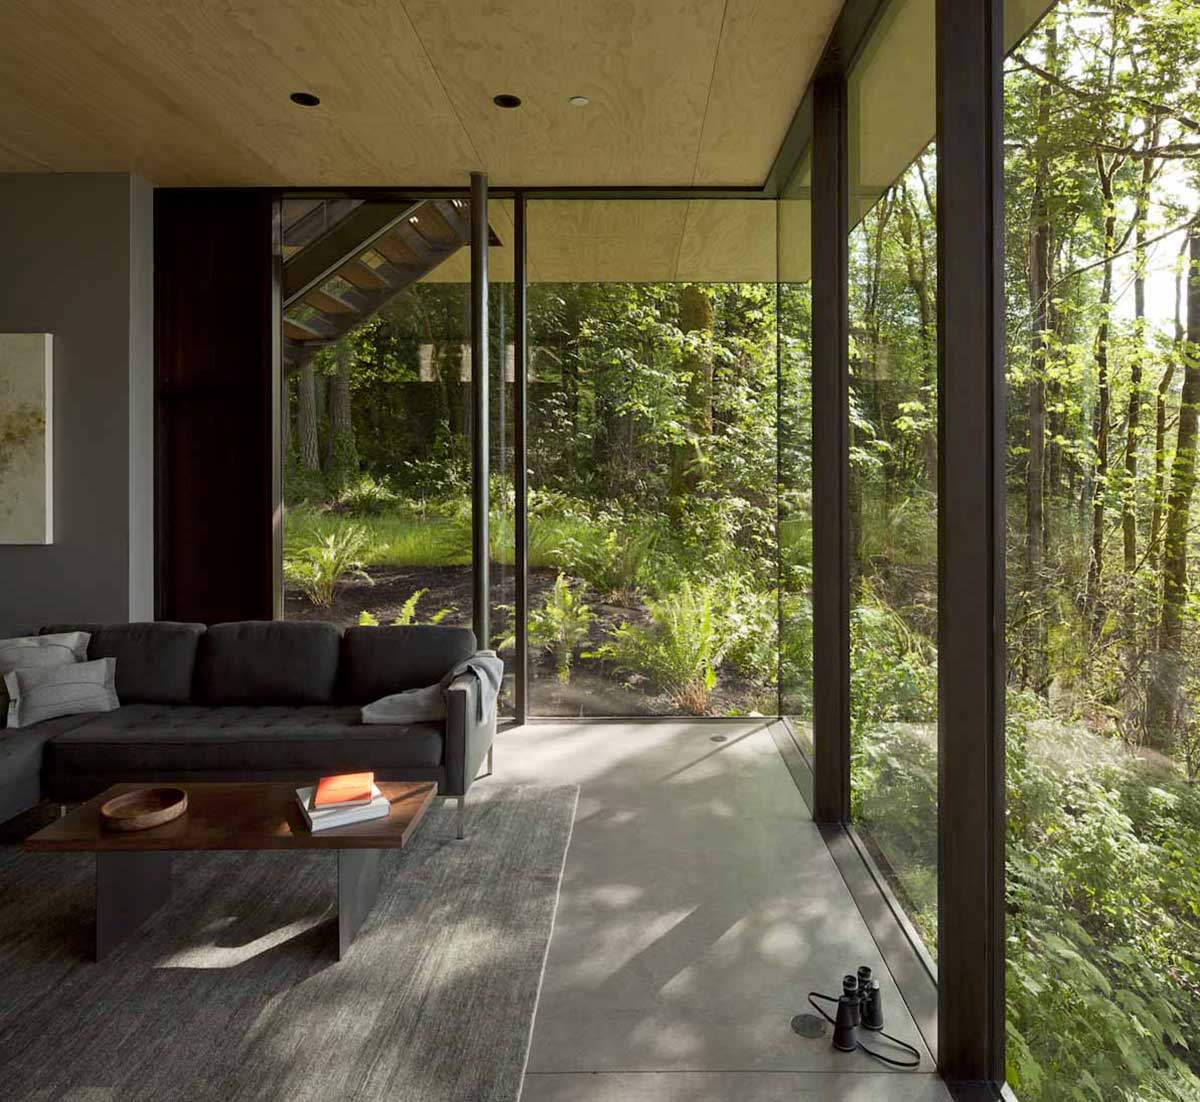 Living Room, Glass Walls, Vacation Home with Amazing Inlet Views in Washington